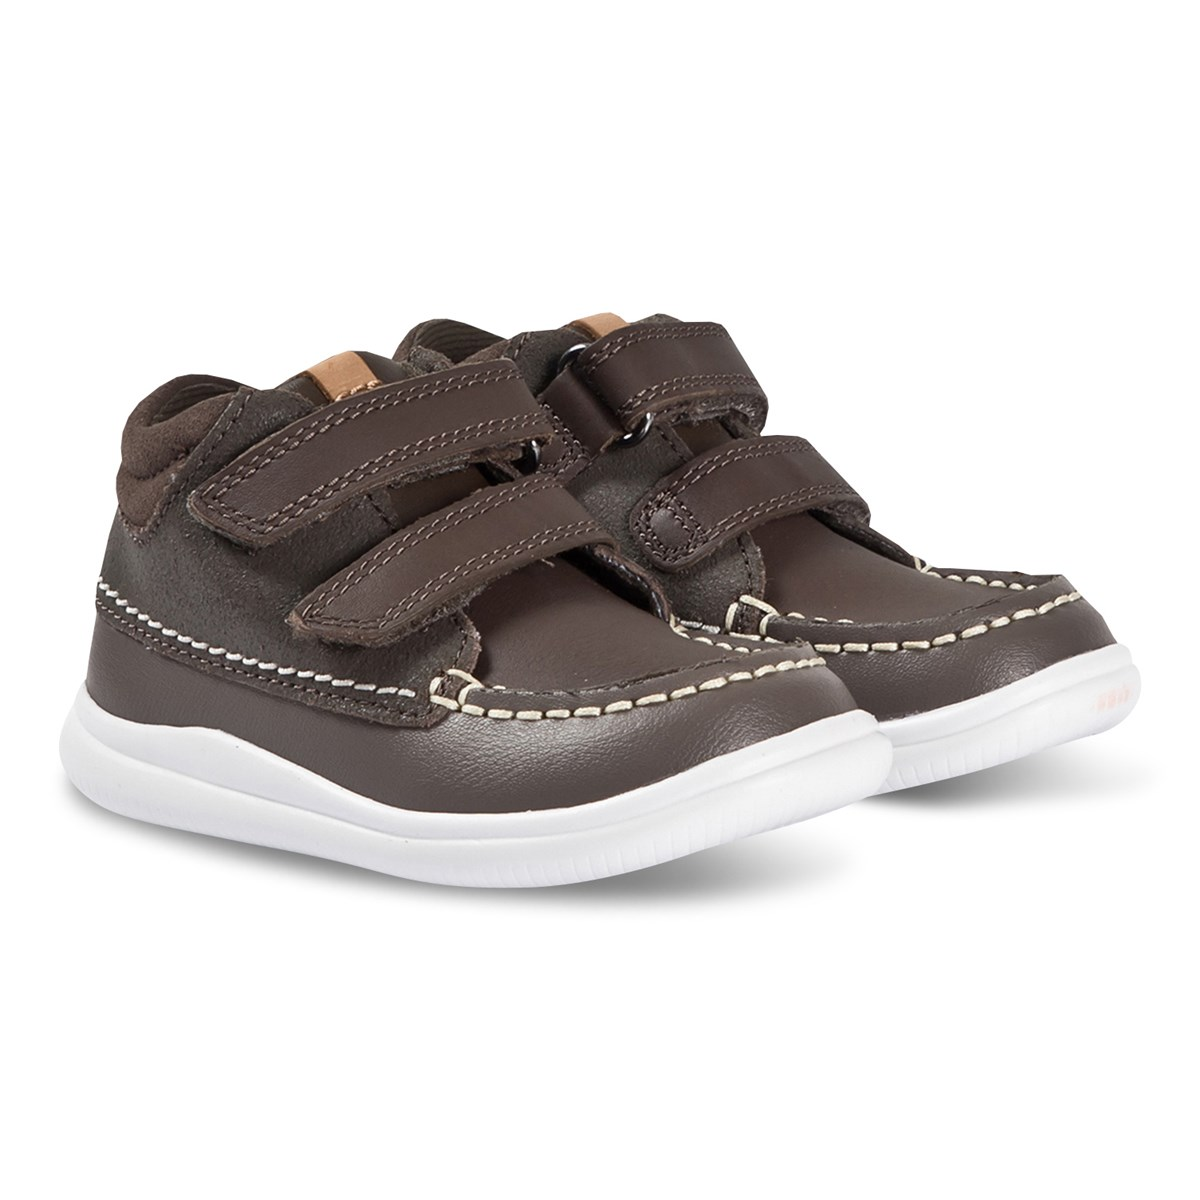 Clarks Brown Leather Tuktu Velcro Trainers